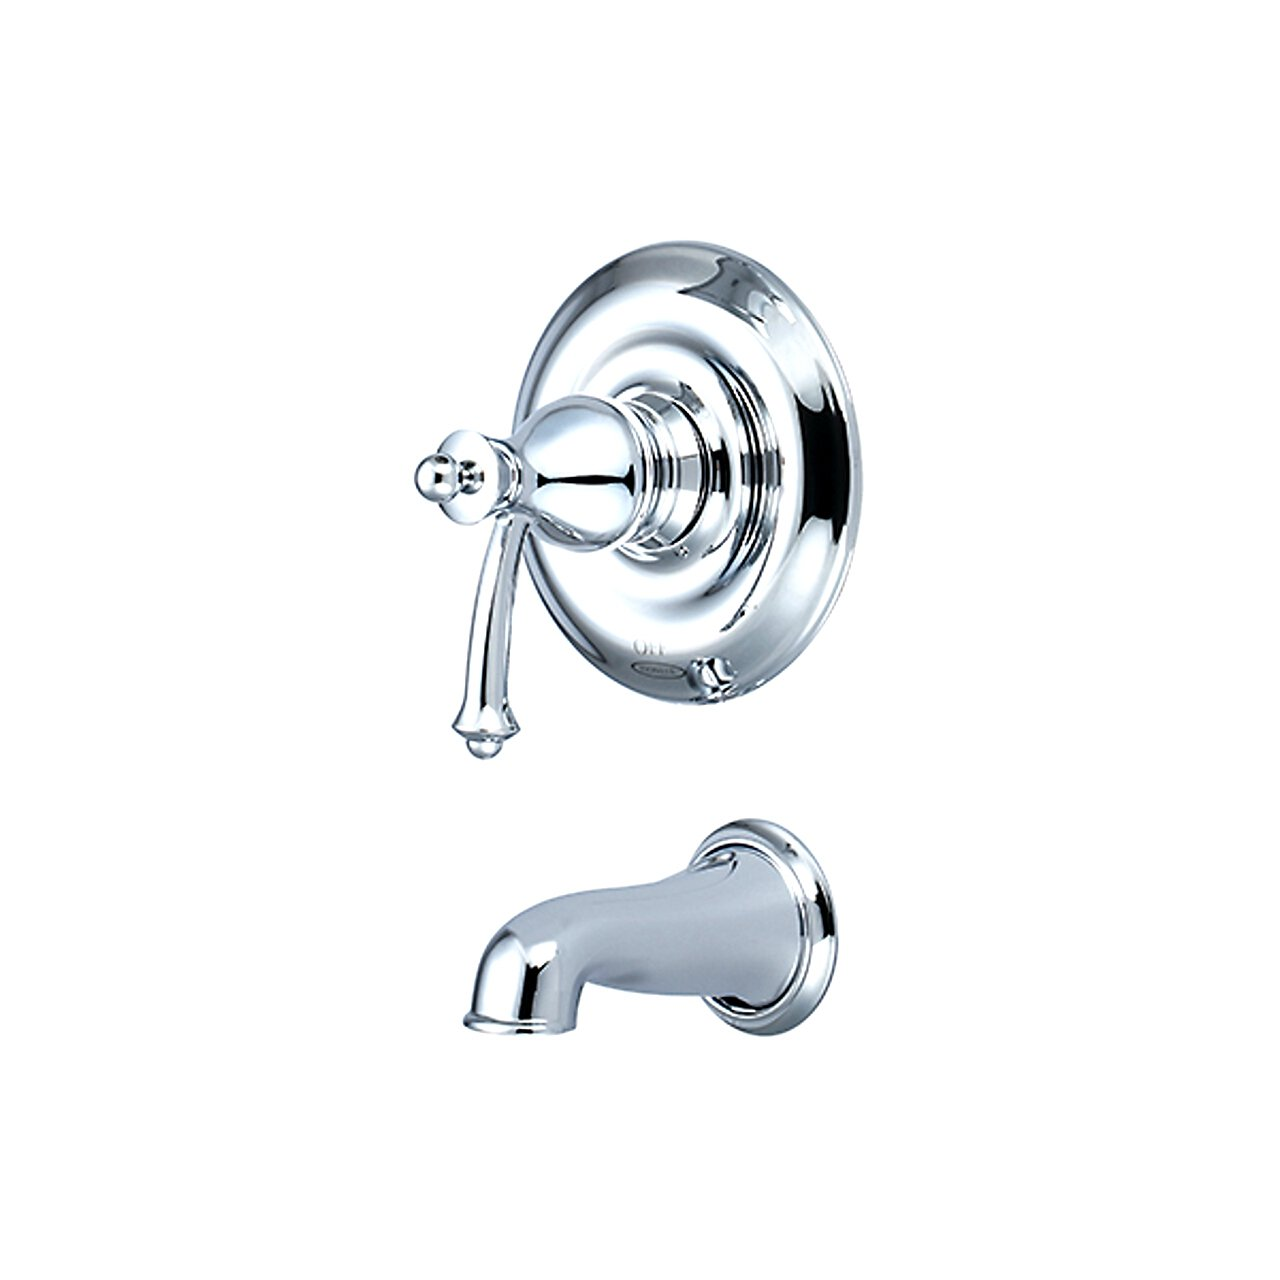 Pioneer 4BL200T-BN Single Handle Tub Trim Set PVD Brushed Nickel Finish